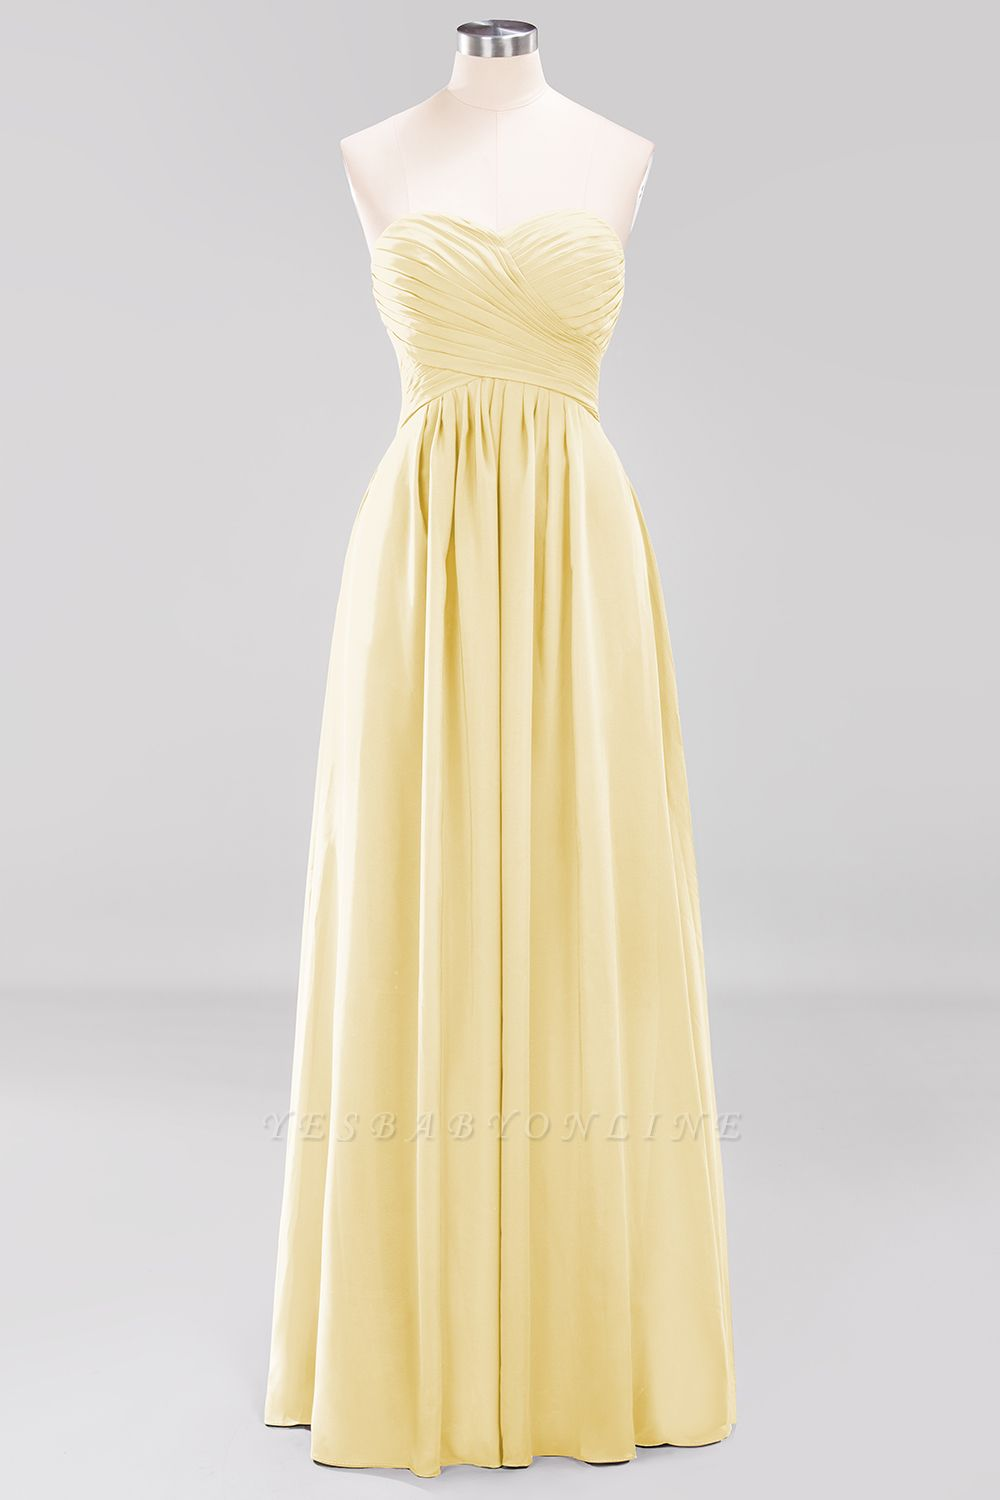 A-line  Sweetheart Strapless Ruffles Floor-length Bridesmaid Dress